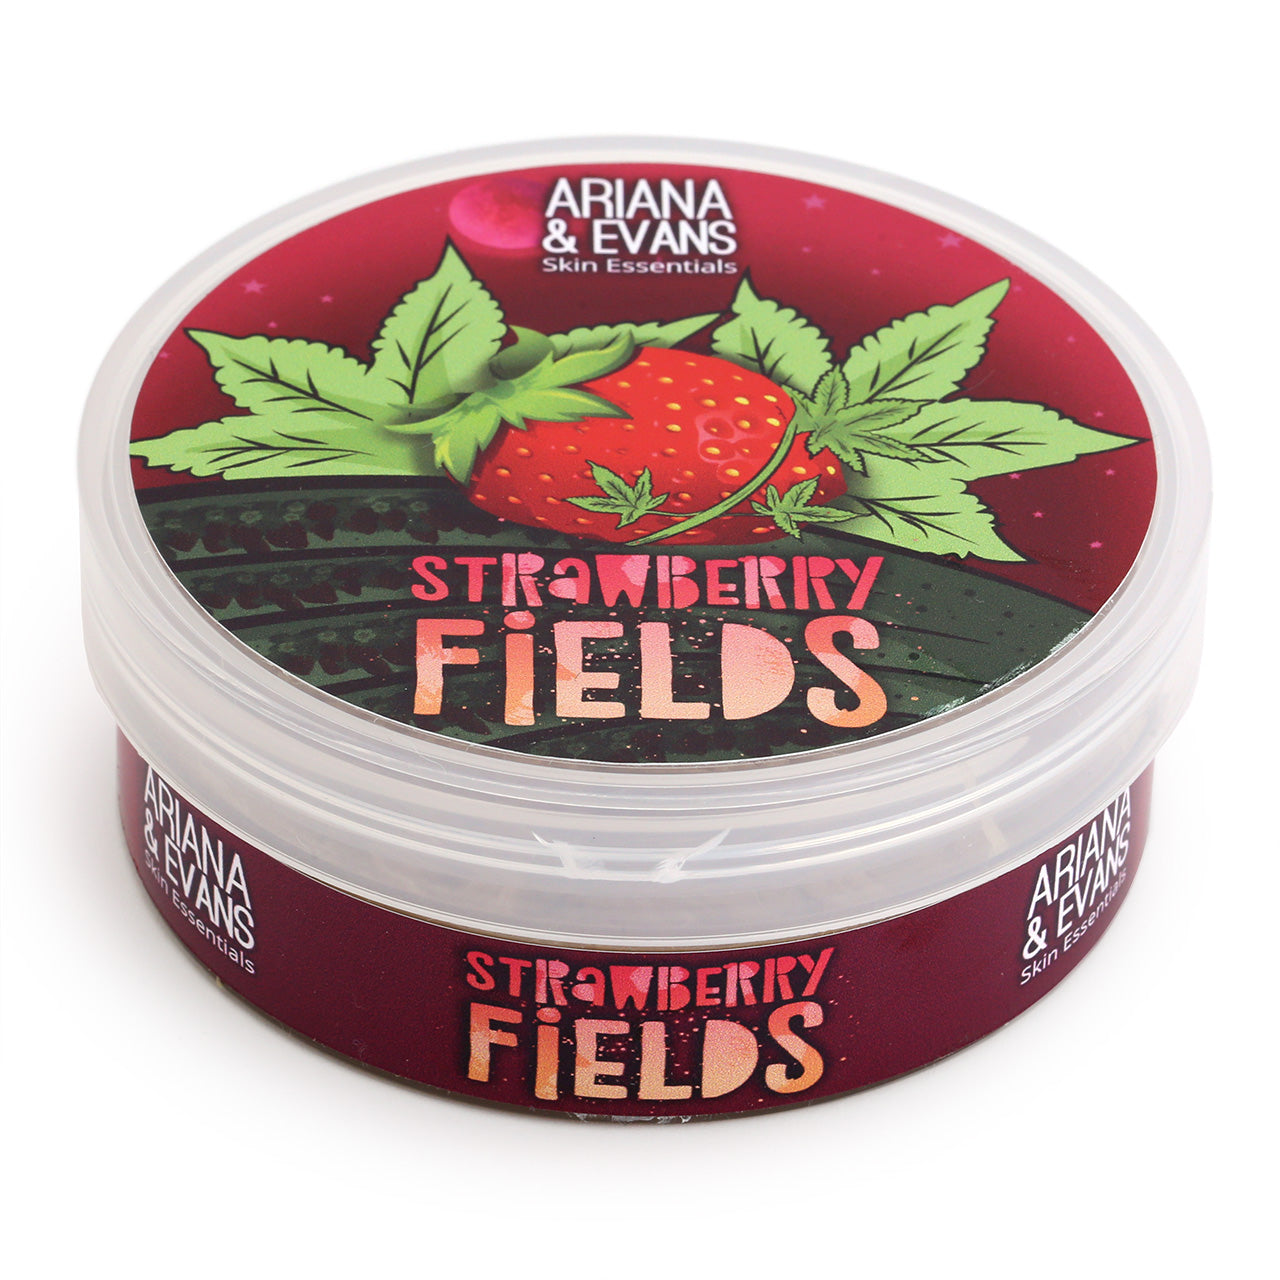 Ariana & Evans Shave Soap - Strawberry Fields - 118ml Tub, top view